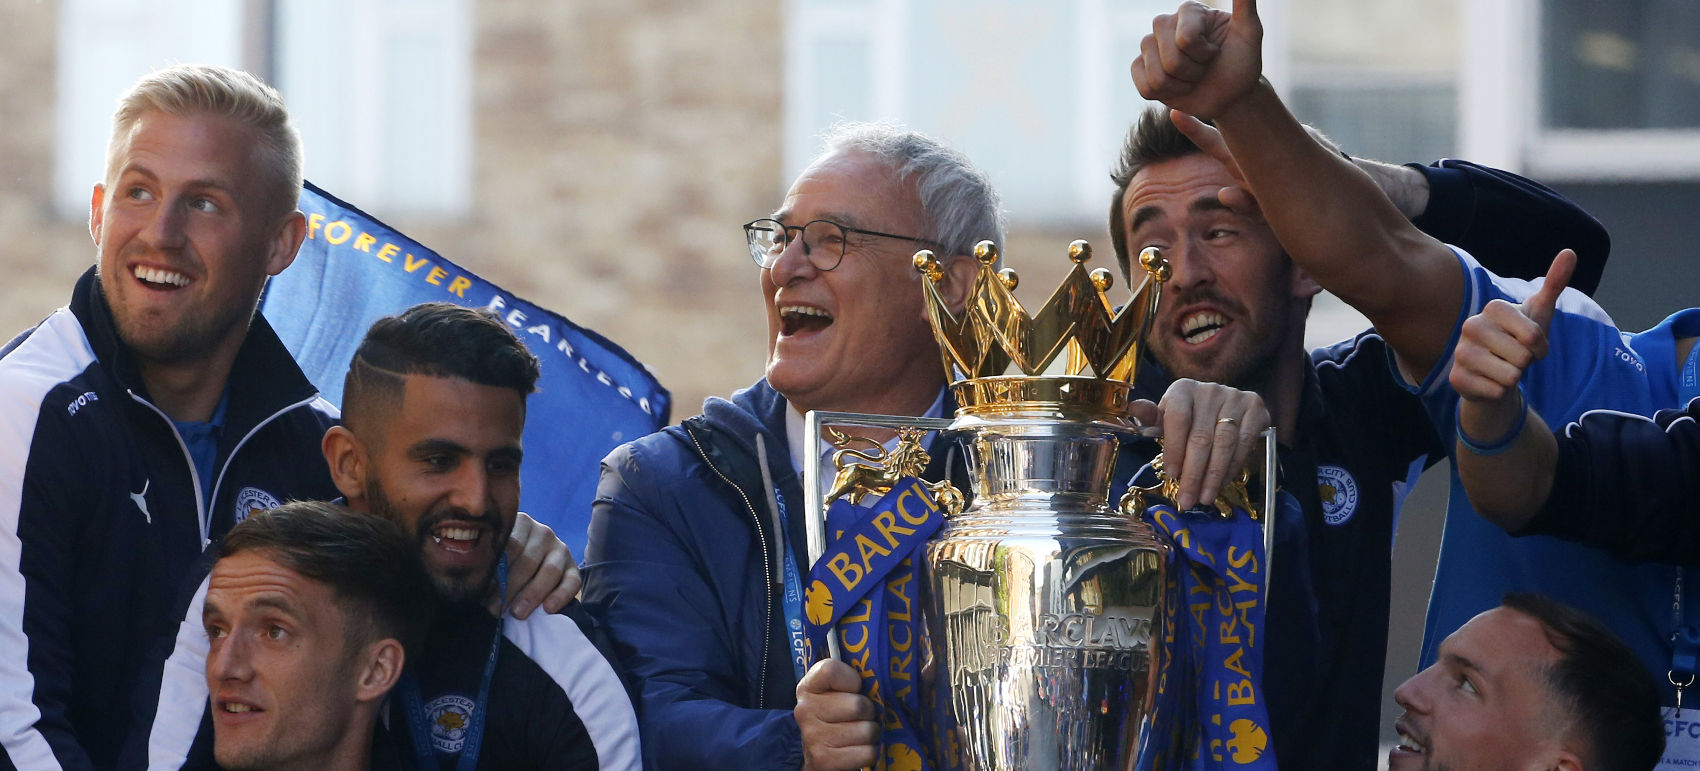 → After Jamie Vardy and Riyad Mahrez, who was Leicester City's highest-scoring FPL asset (in terms of overall points) of their title-winning year?